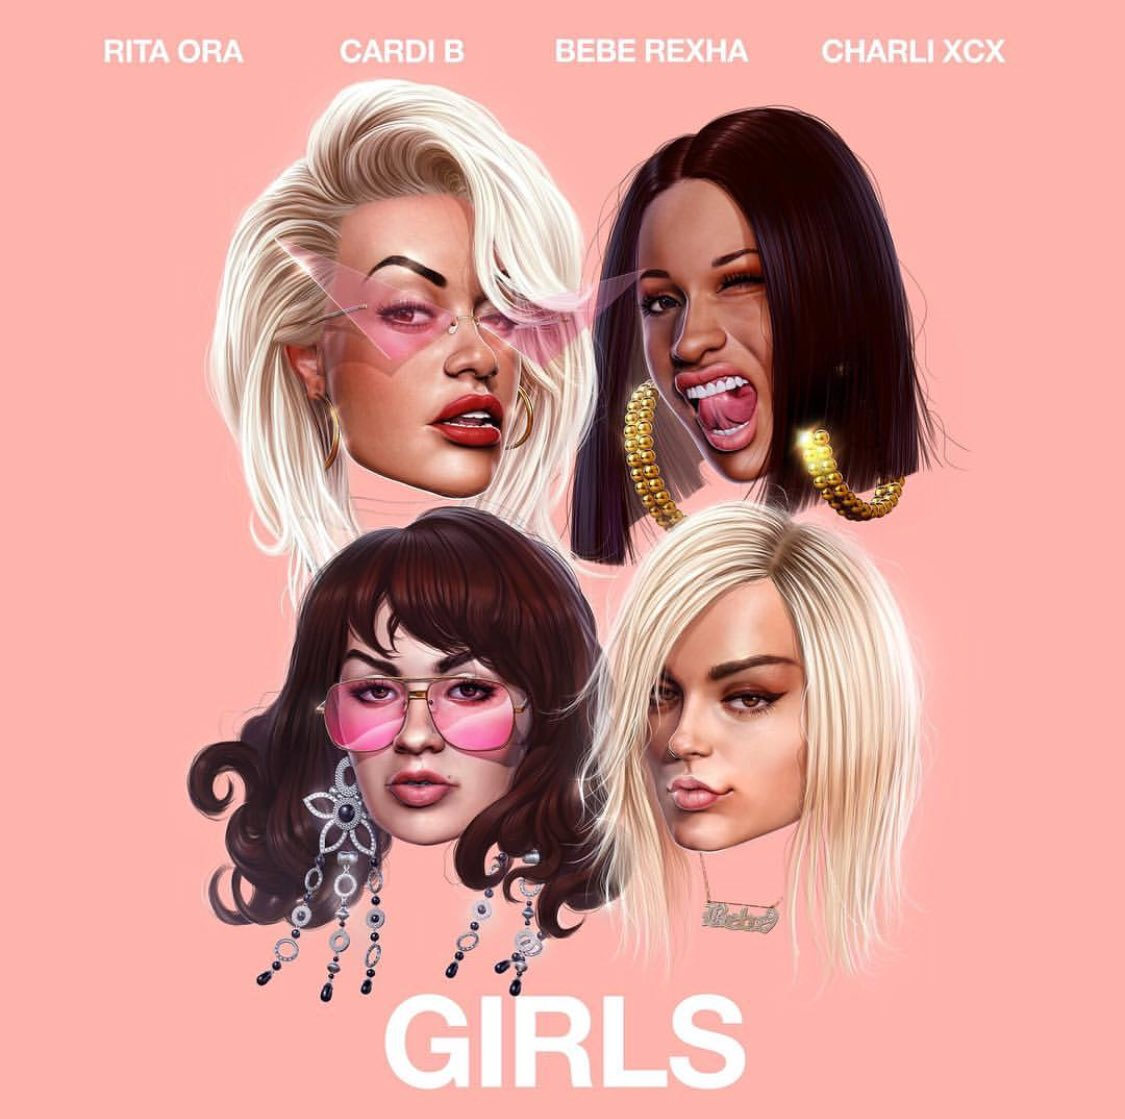 Rita Ora's Releases the New Bisexual 'Anthem'